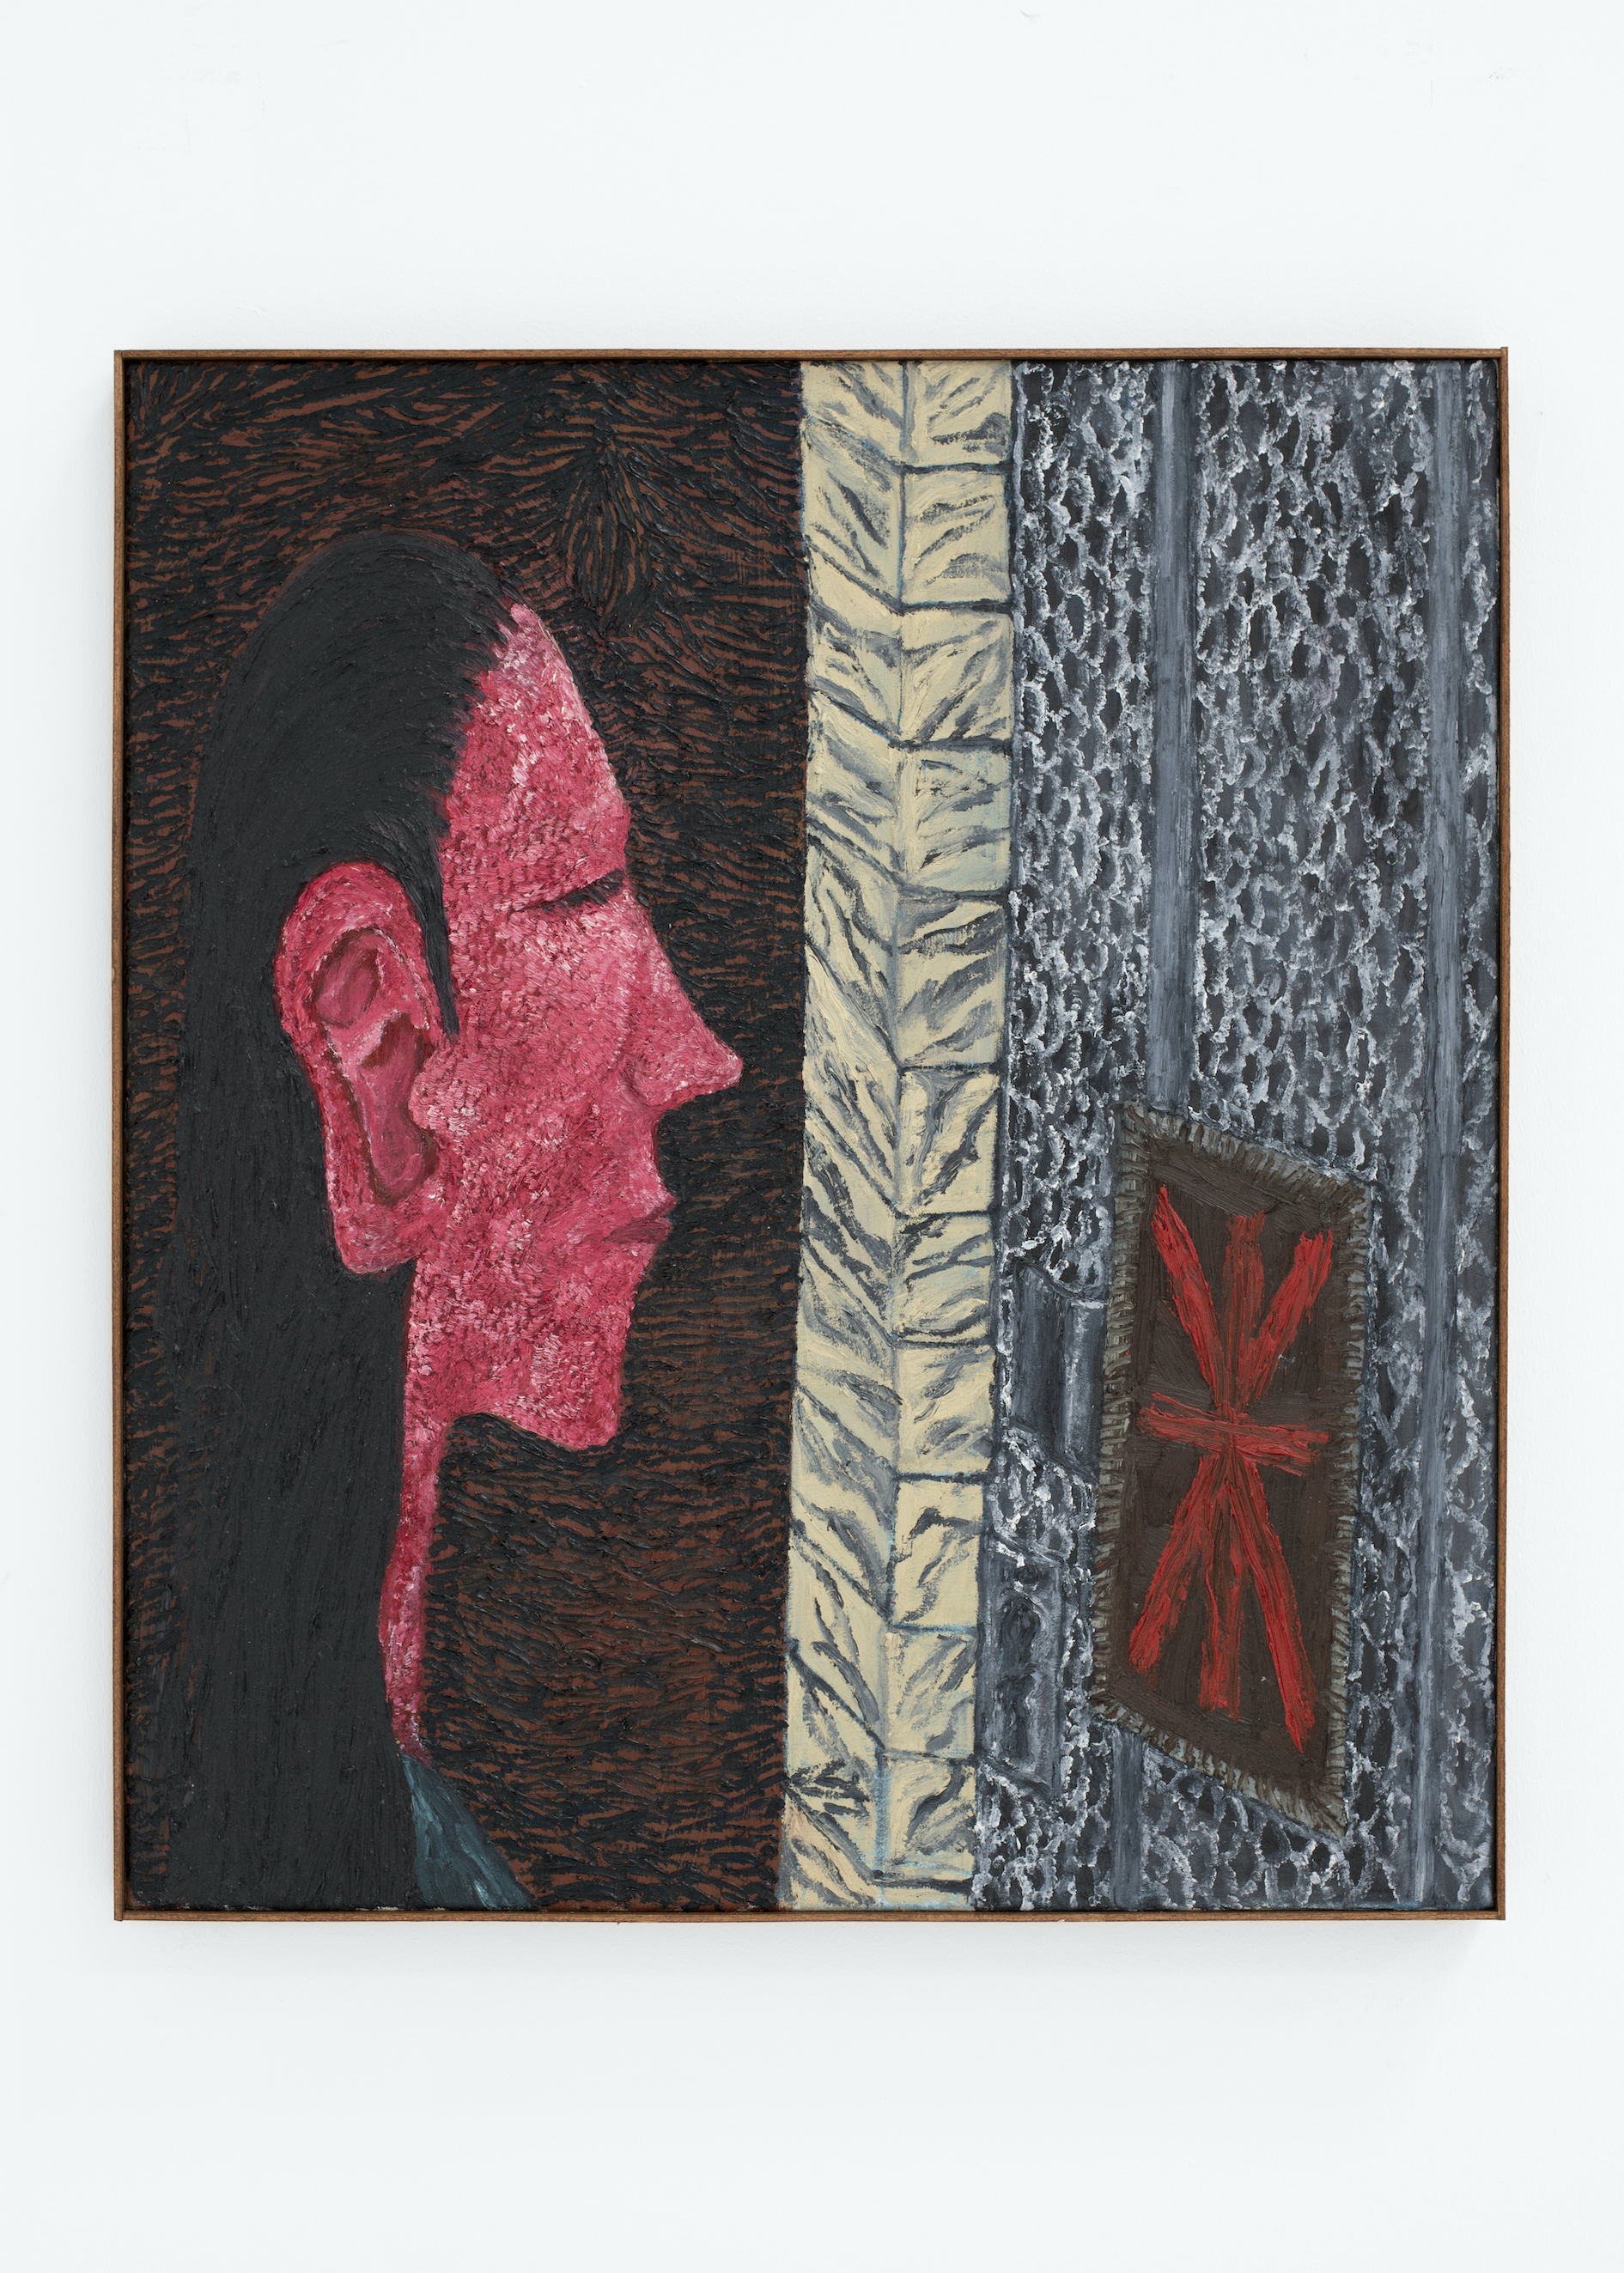 STEVIE DIX The door to Oostlaan Number 58, 2021 Oil and beeswax on canvas. Óleo y cera sobre lienzo. 85 x 75 cm